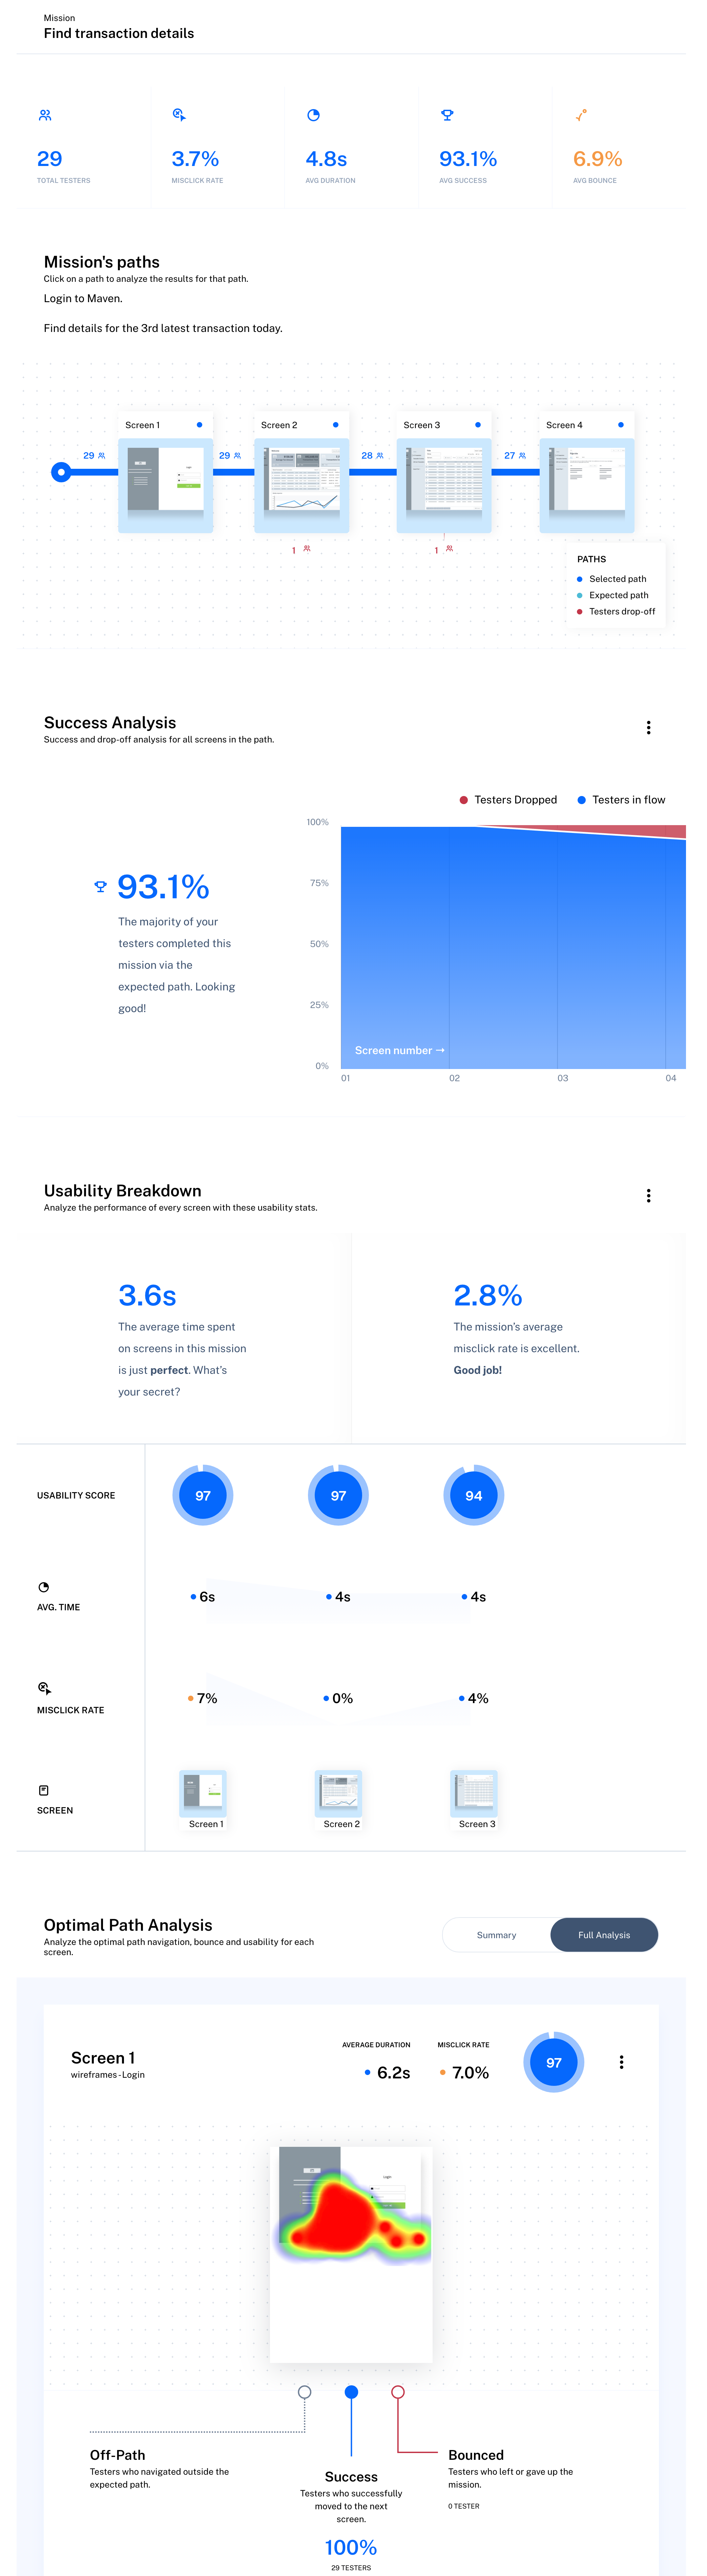 Scroll the image to see a user testing report from Maze — onboard signup process.